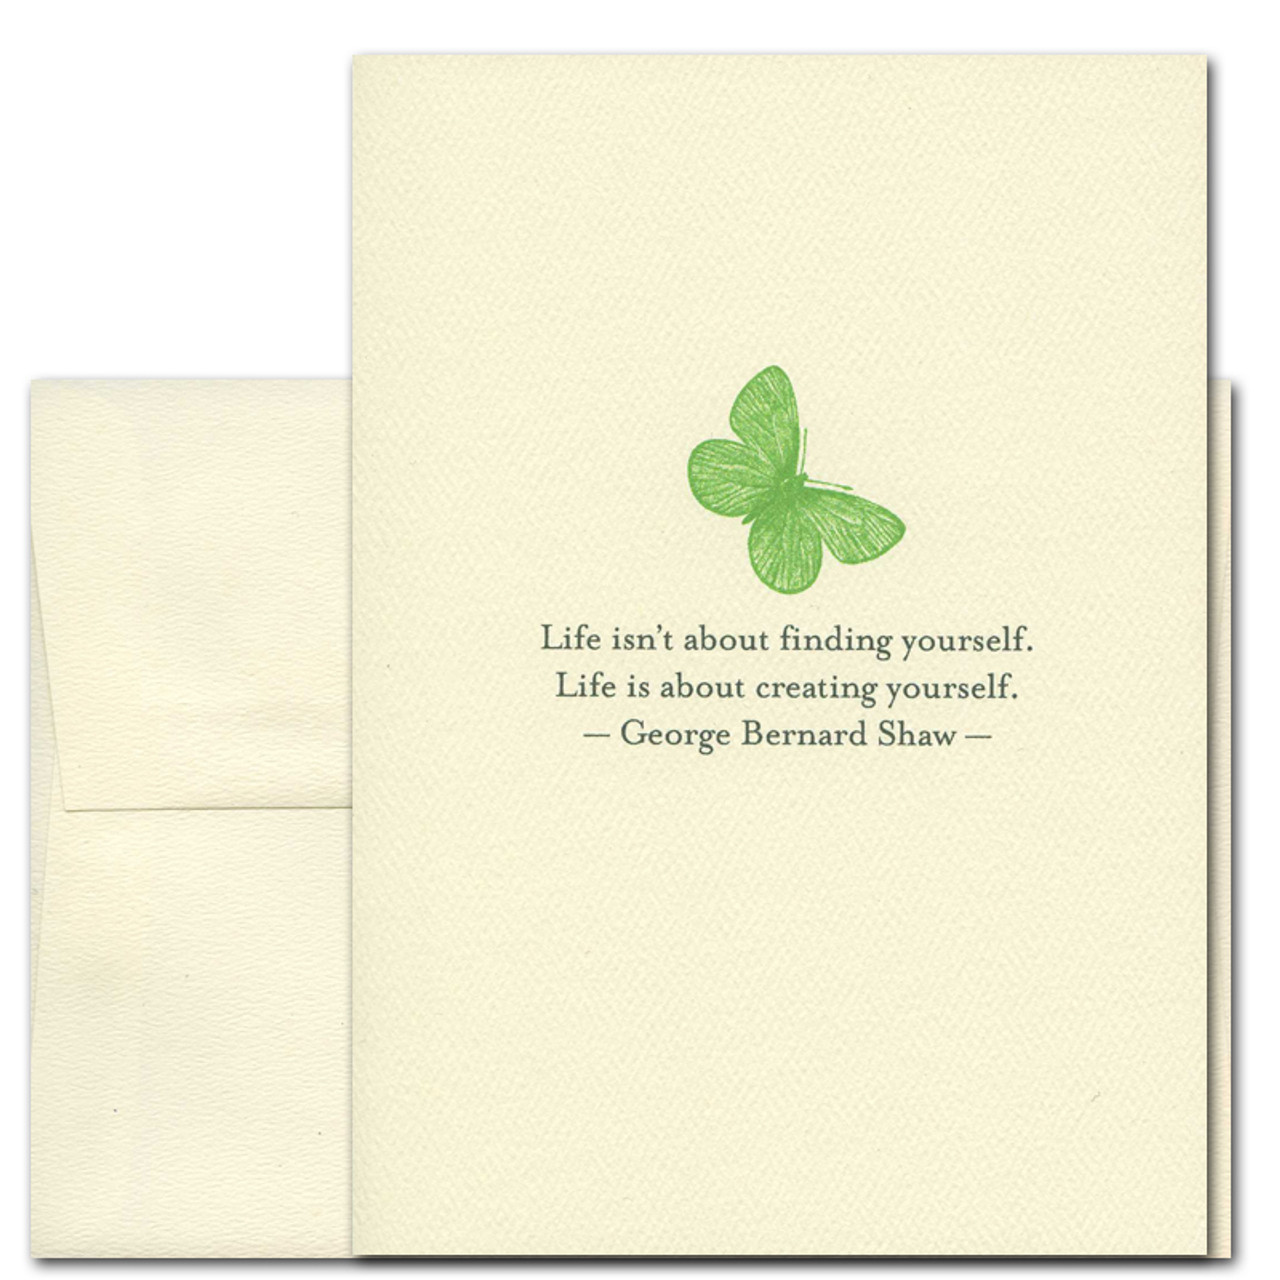 """Quotation Card """"Creating Yourself: Shaw"""" Cover shows green vintage illustration of a butterfly with a quote from George Bernard Shaw reading """"Life isn't about finding yourself. Life is about creating yourself."""""""